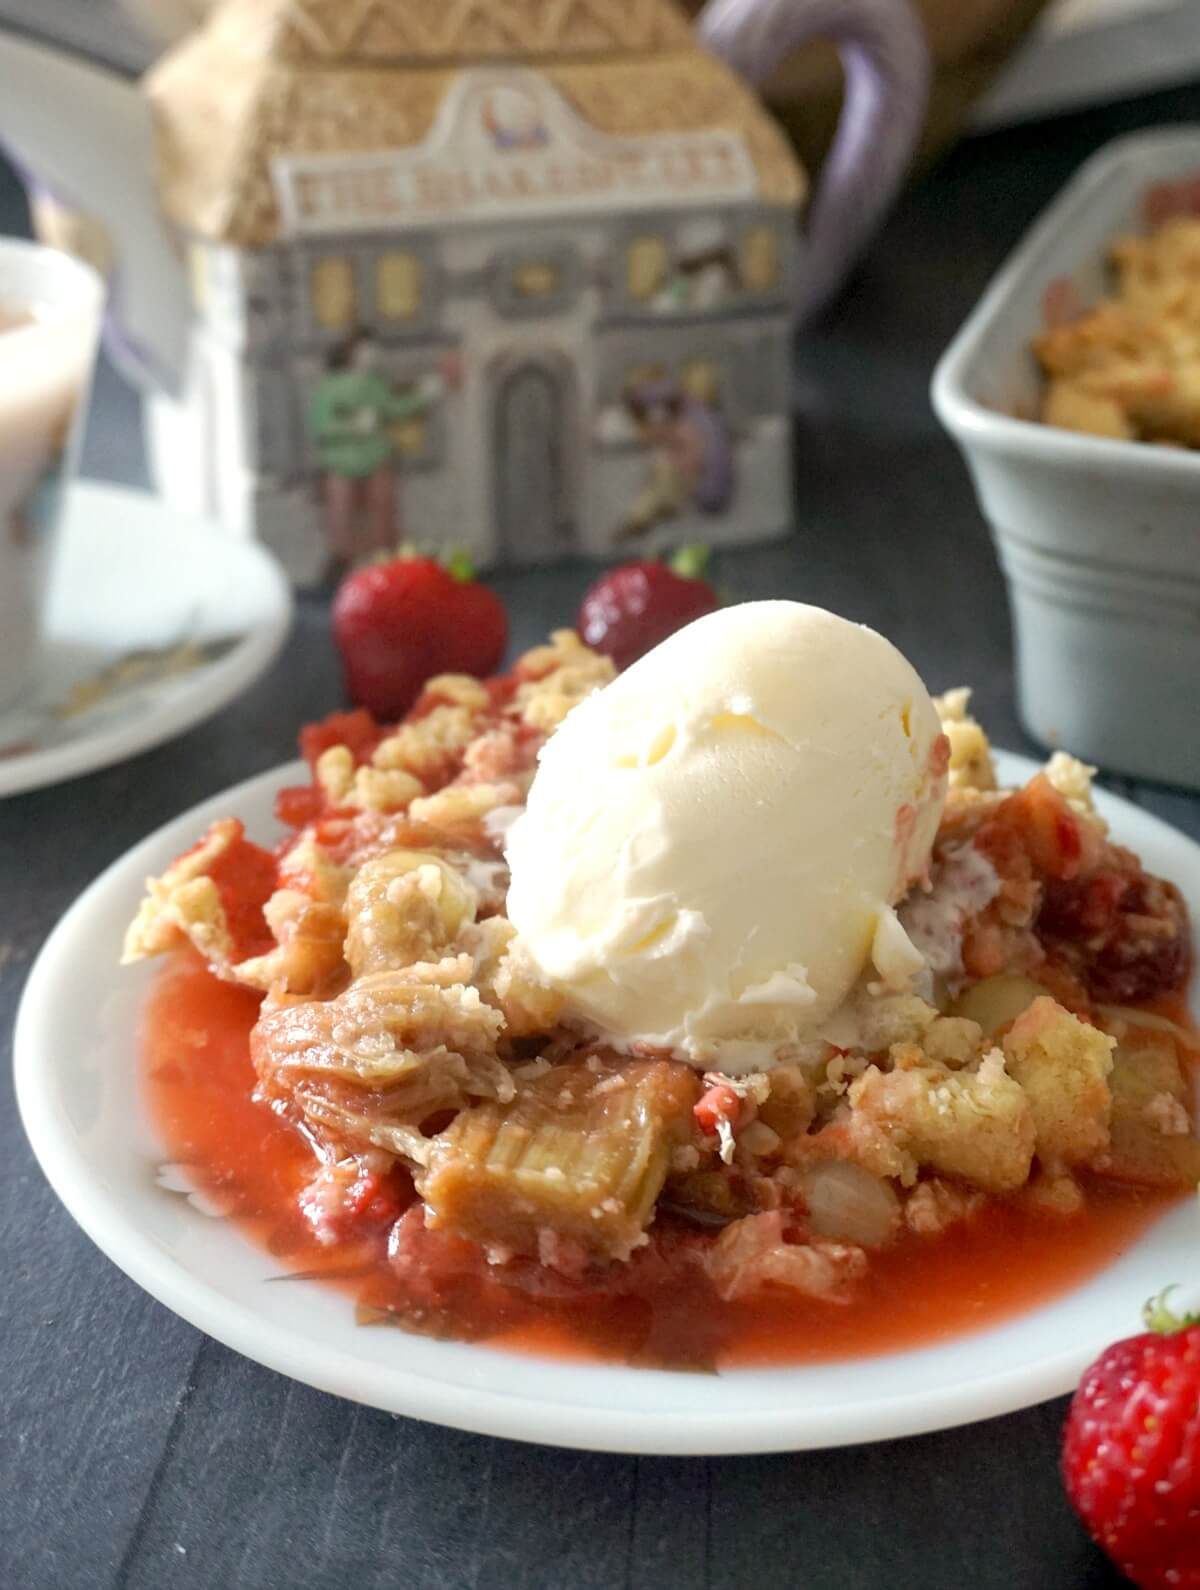 A white plate with fruit crumble topped with a scoop of ice cream